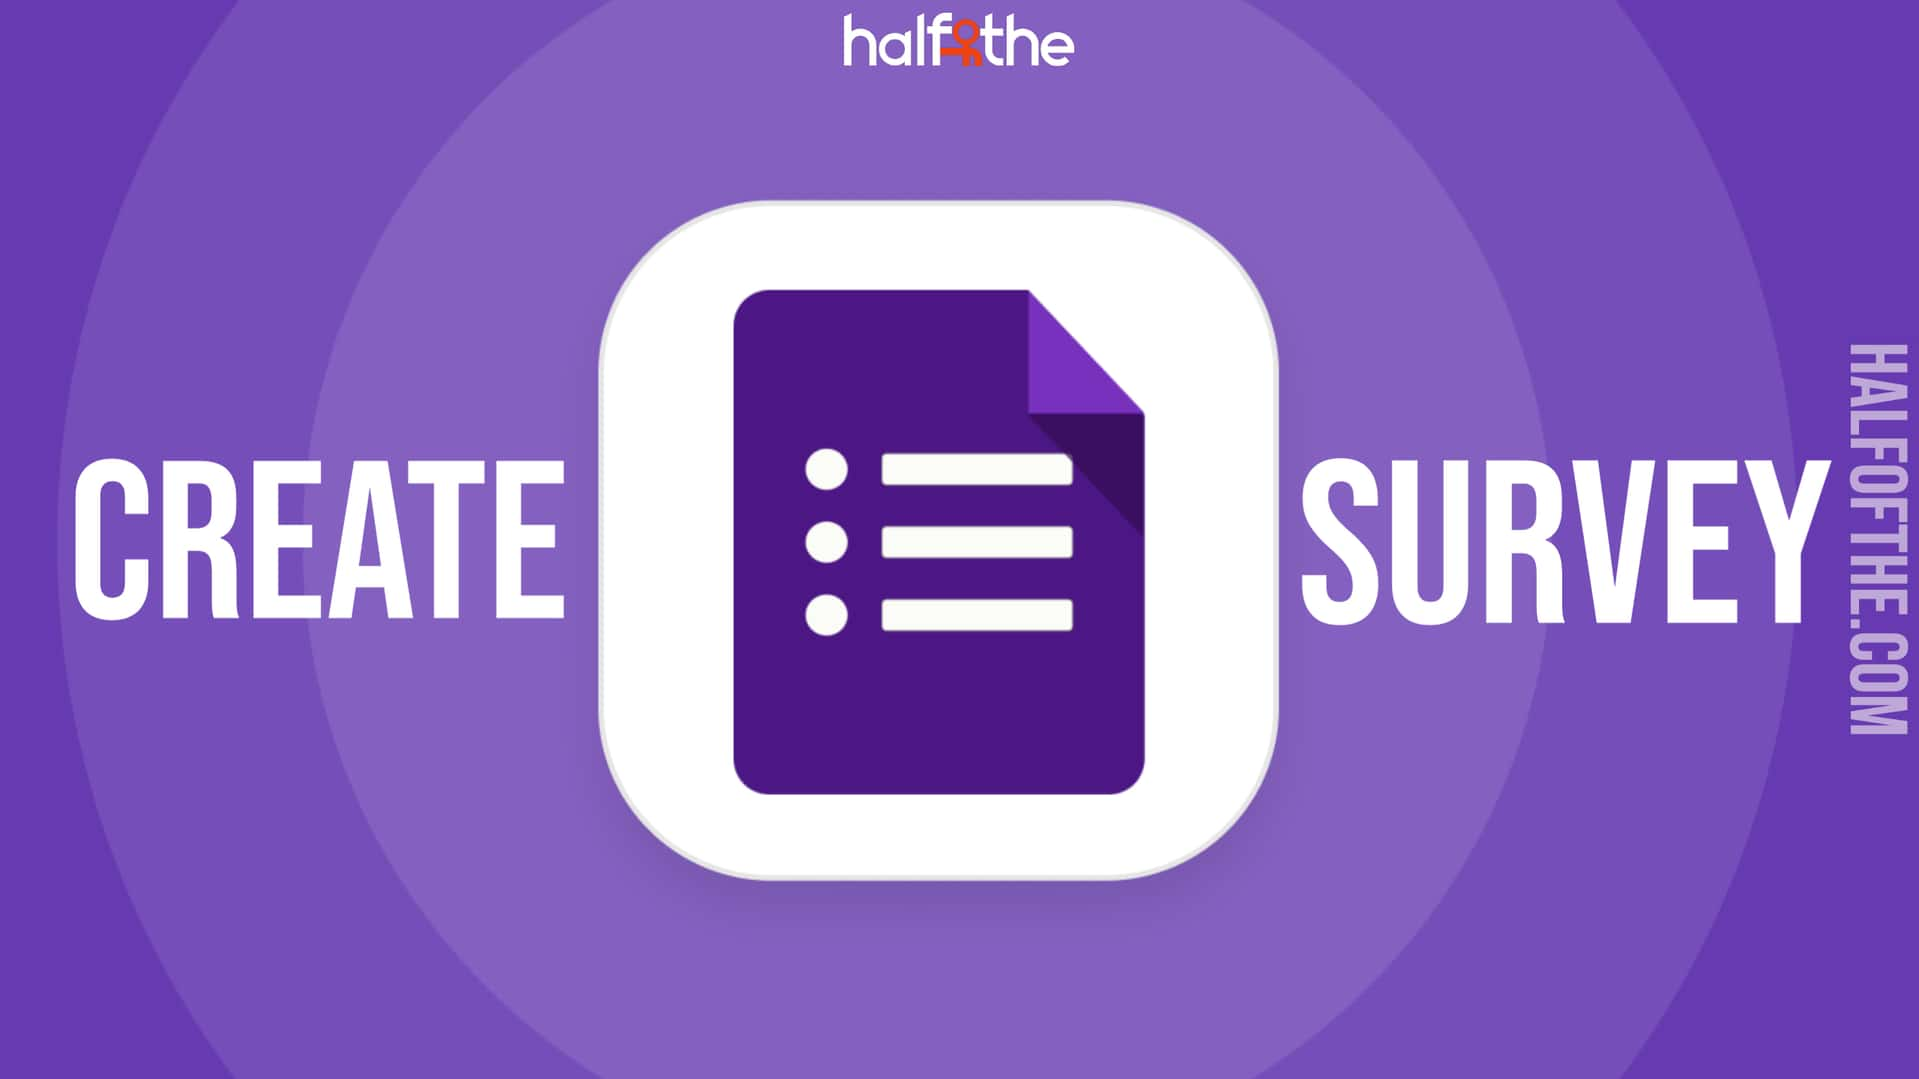 How to Create a Survey in Google Forms?